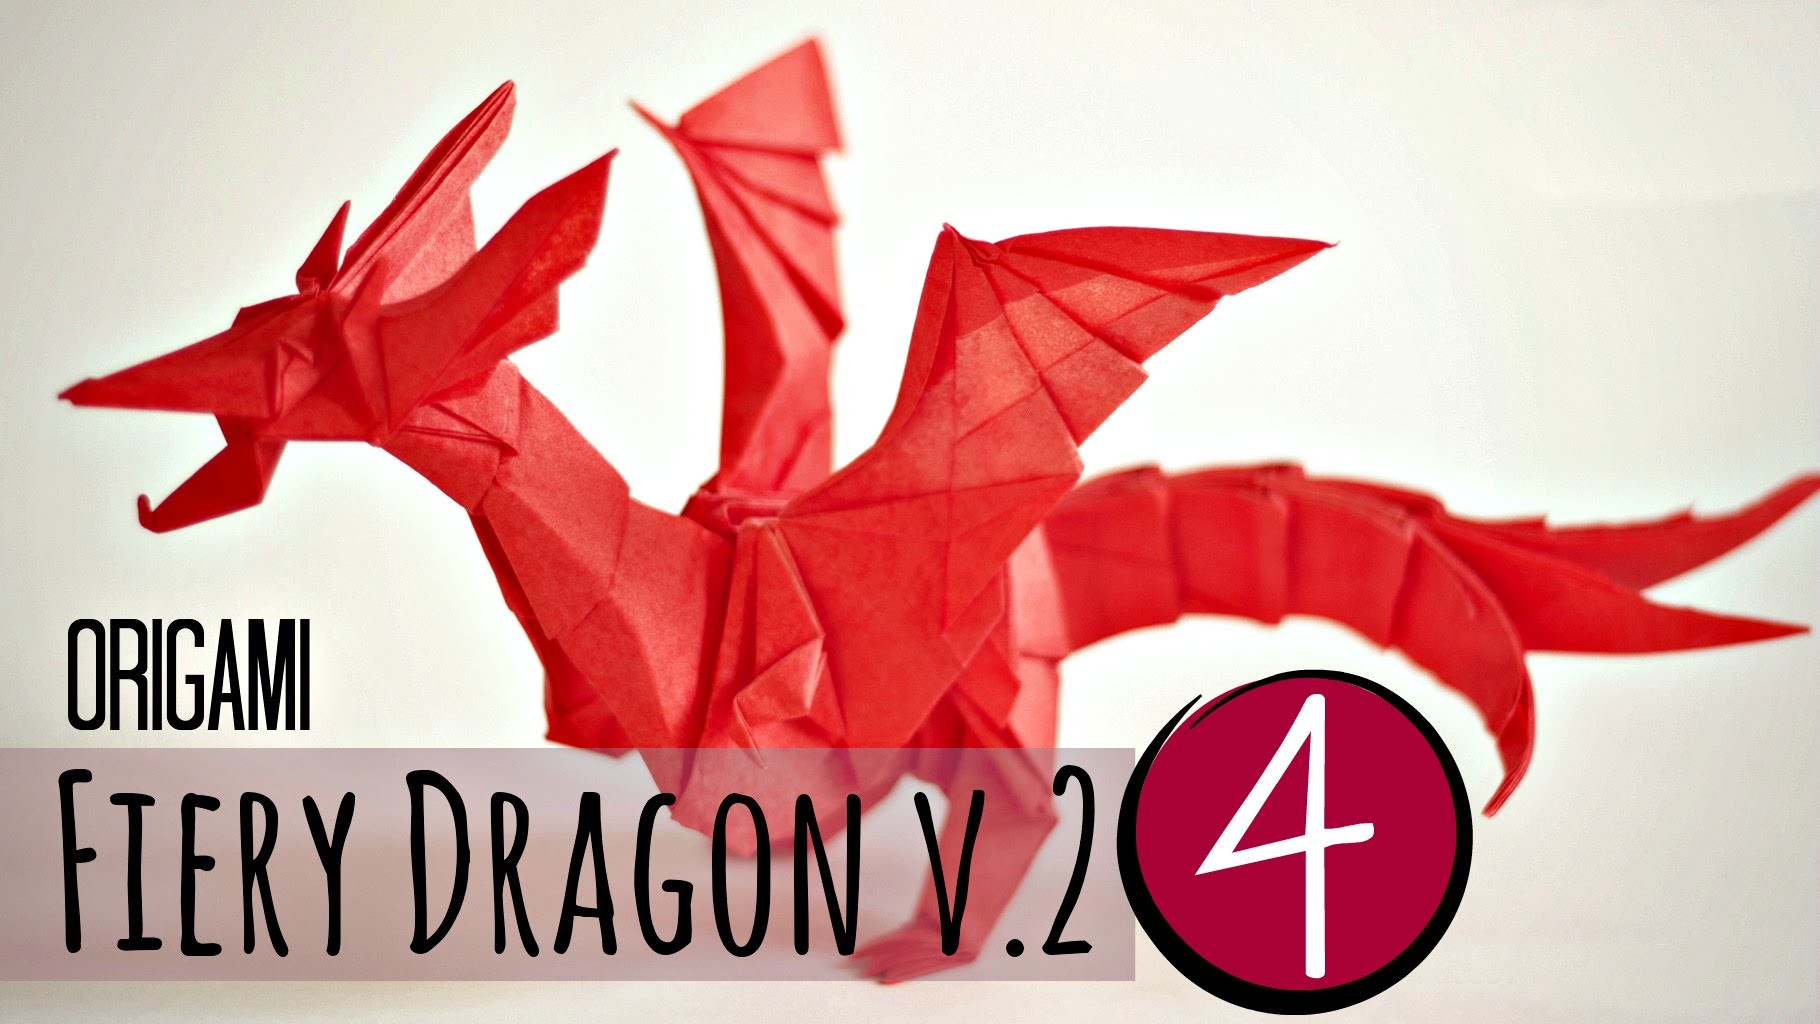 (4.5) How to make an origami Fiery Dragon v.2